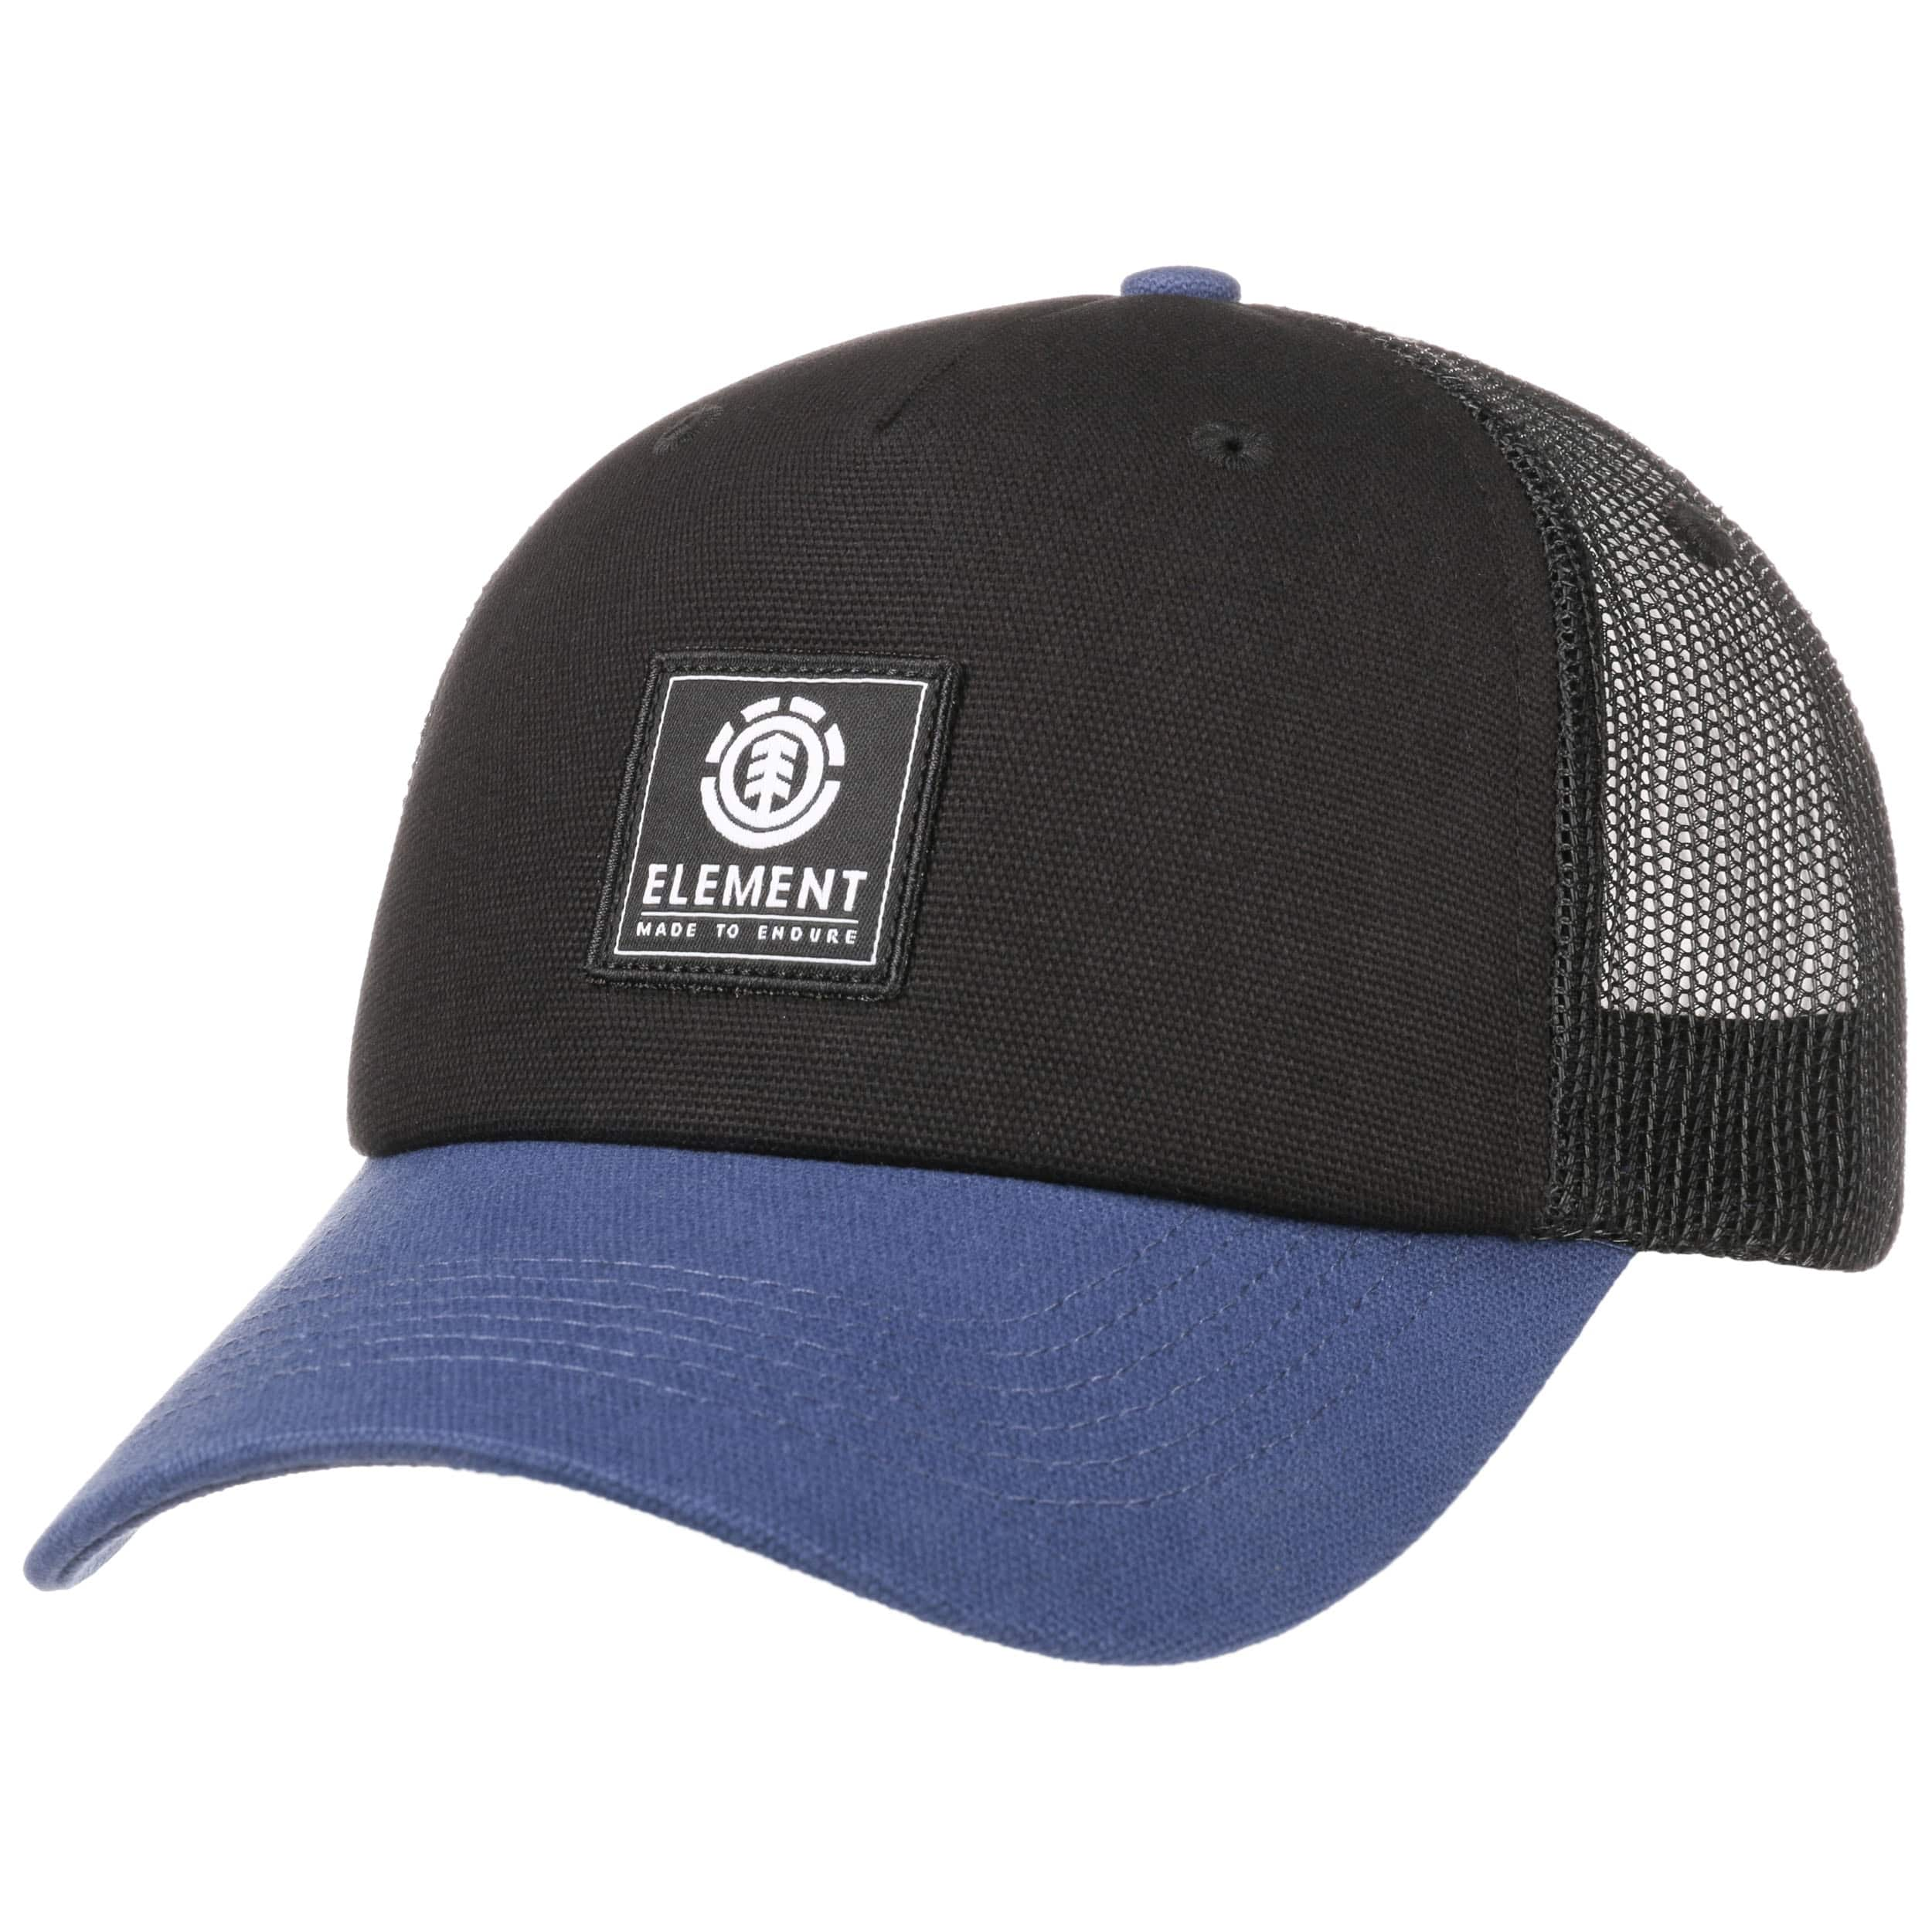 2f0303a92 Icon Mesh Trucker Cap by element